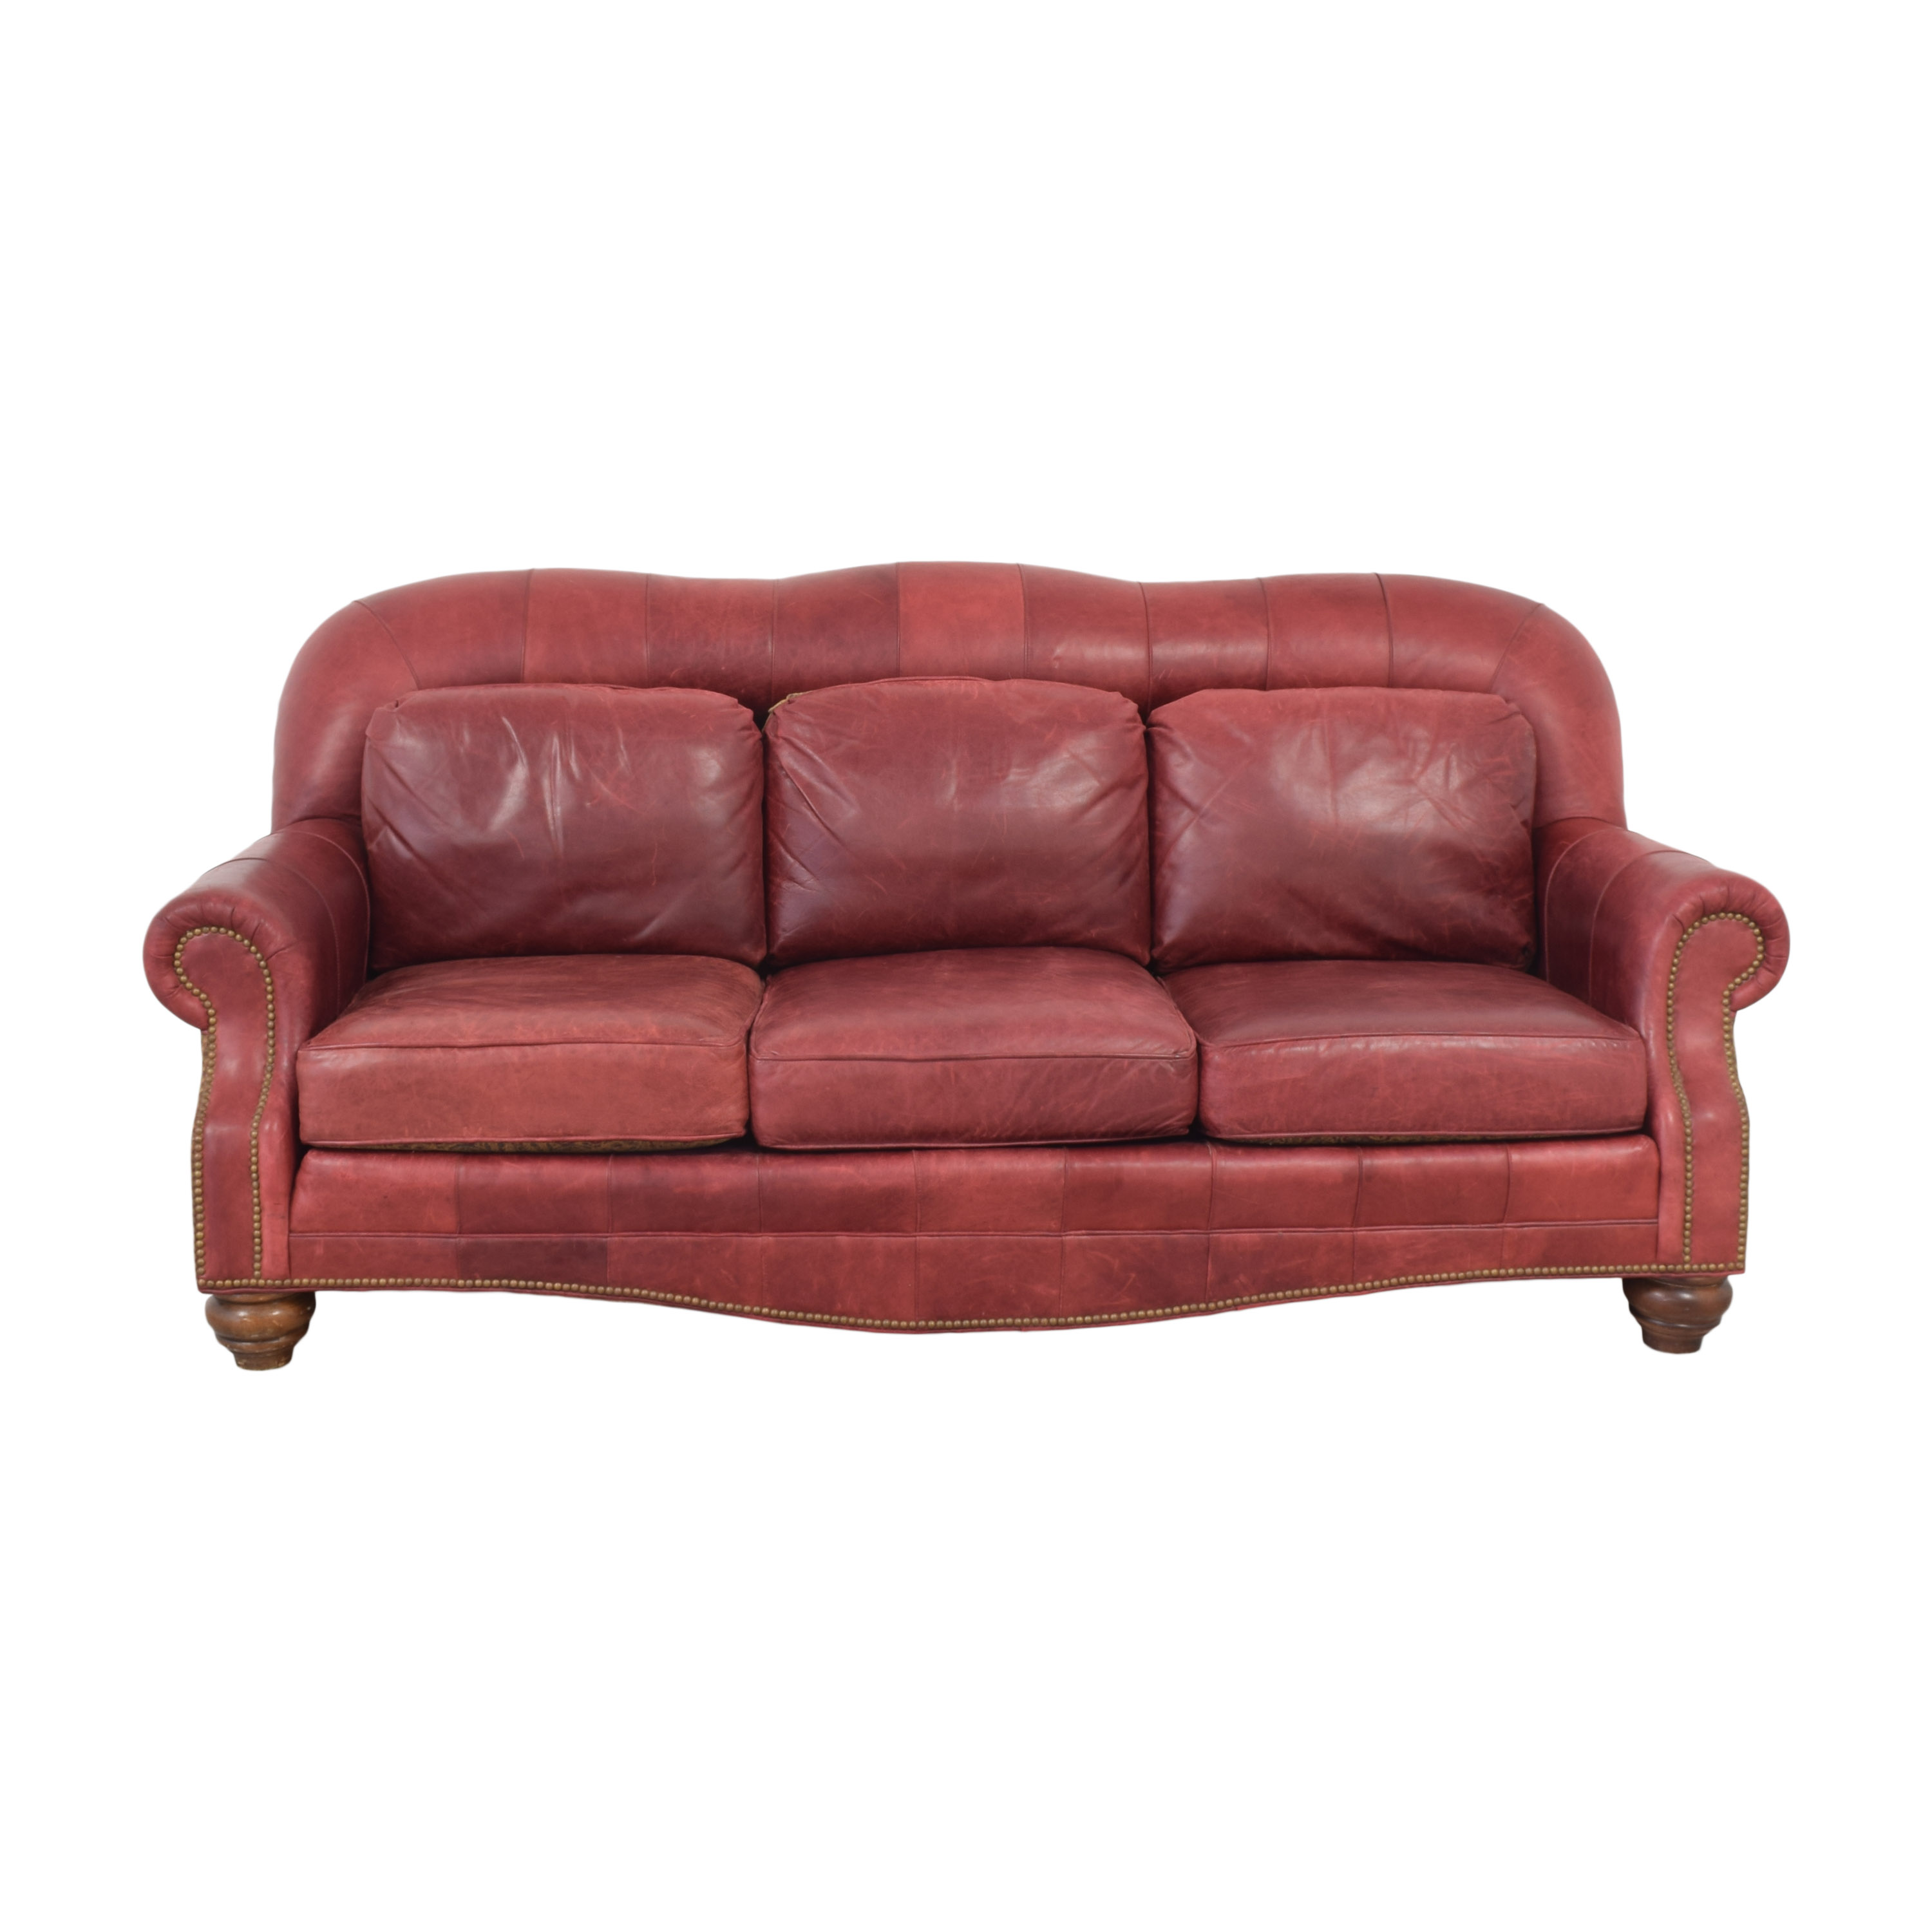 shop  Versatile Leather Sofa online